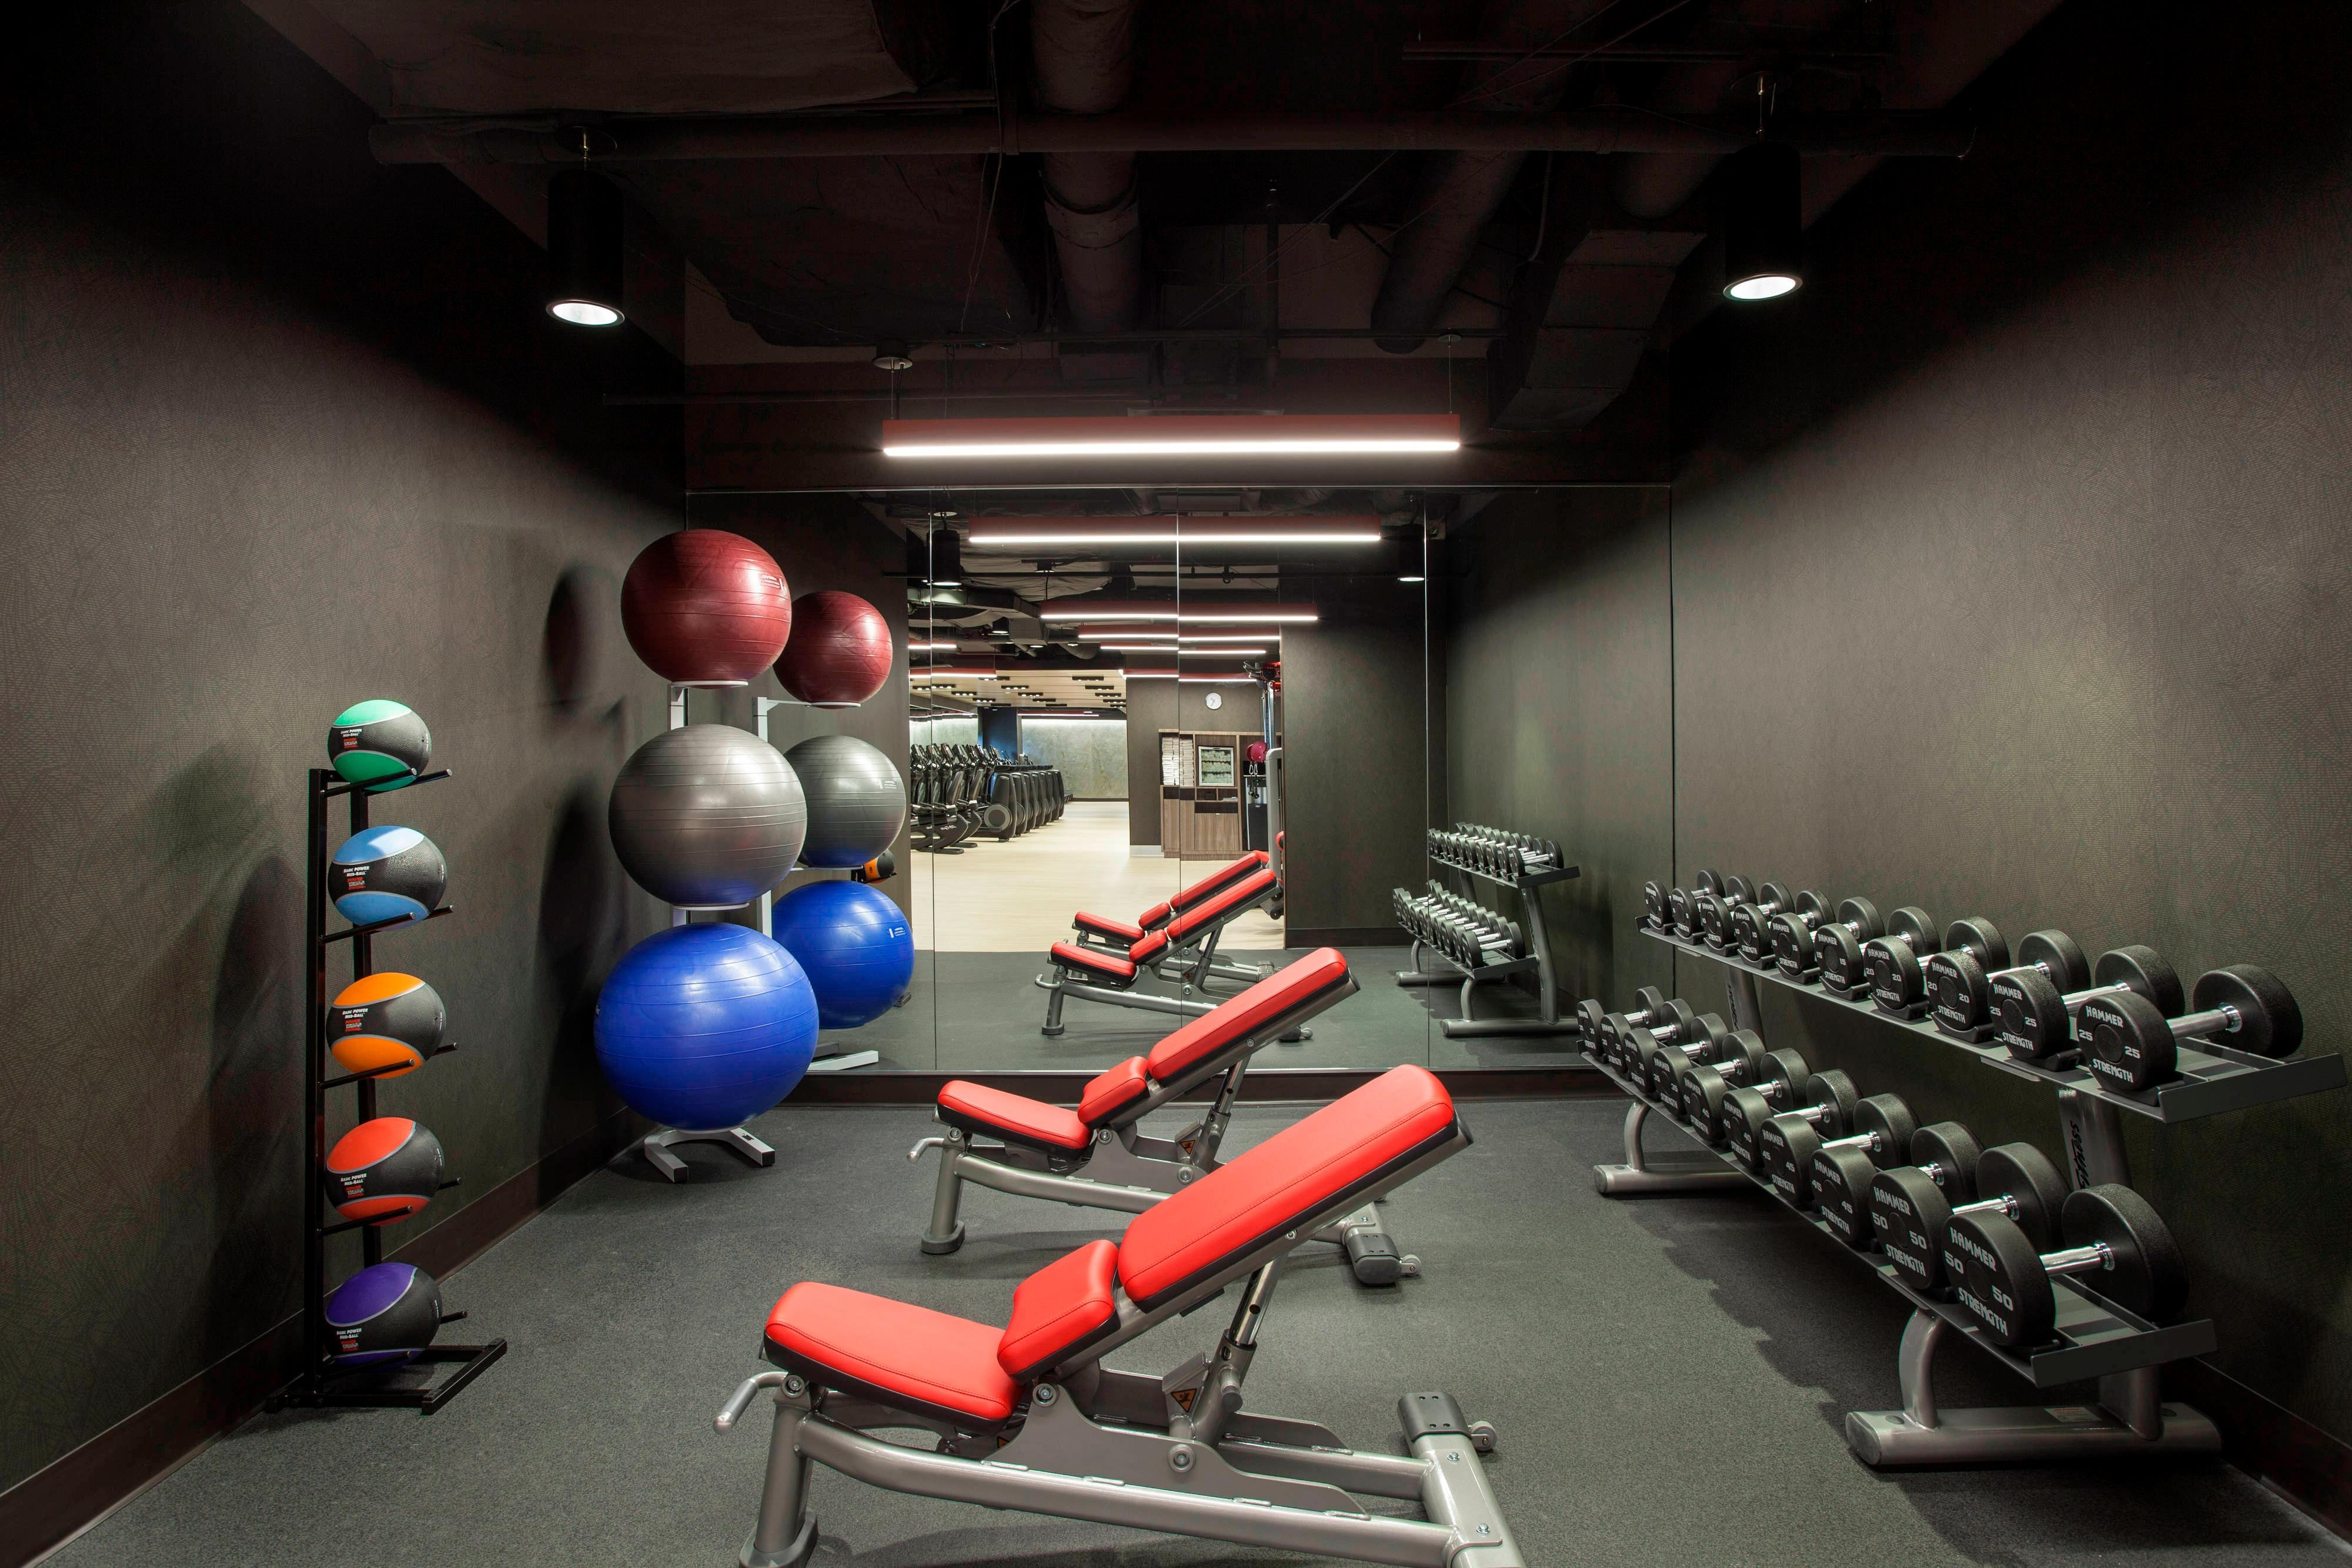 WestinWorkOUT Fitness Studio Free weights